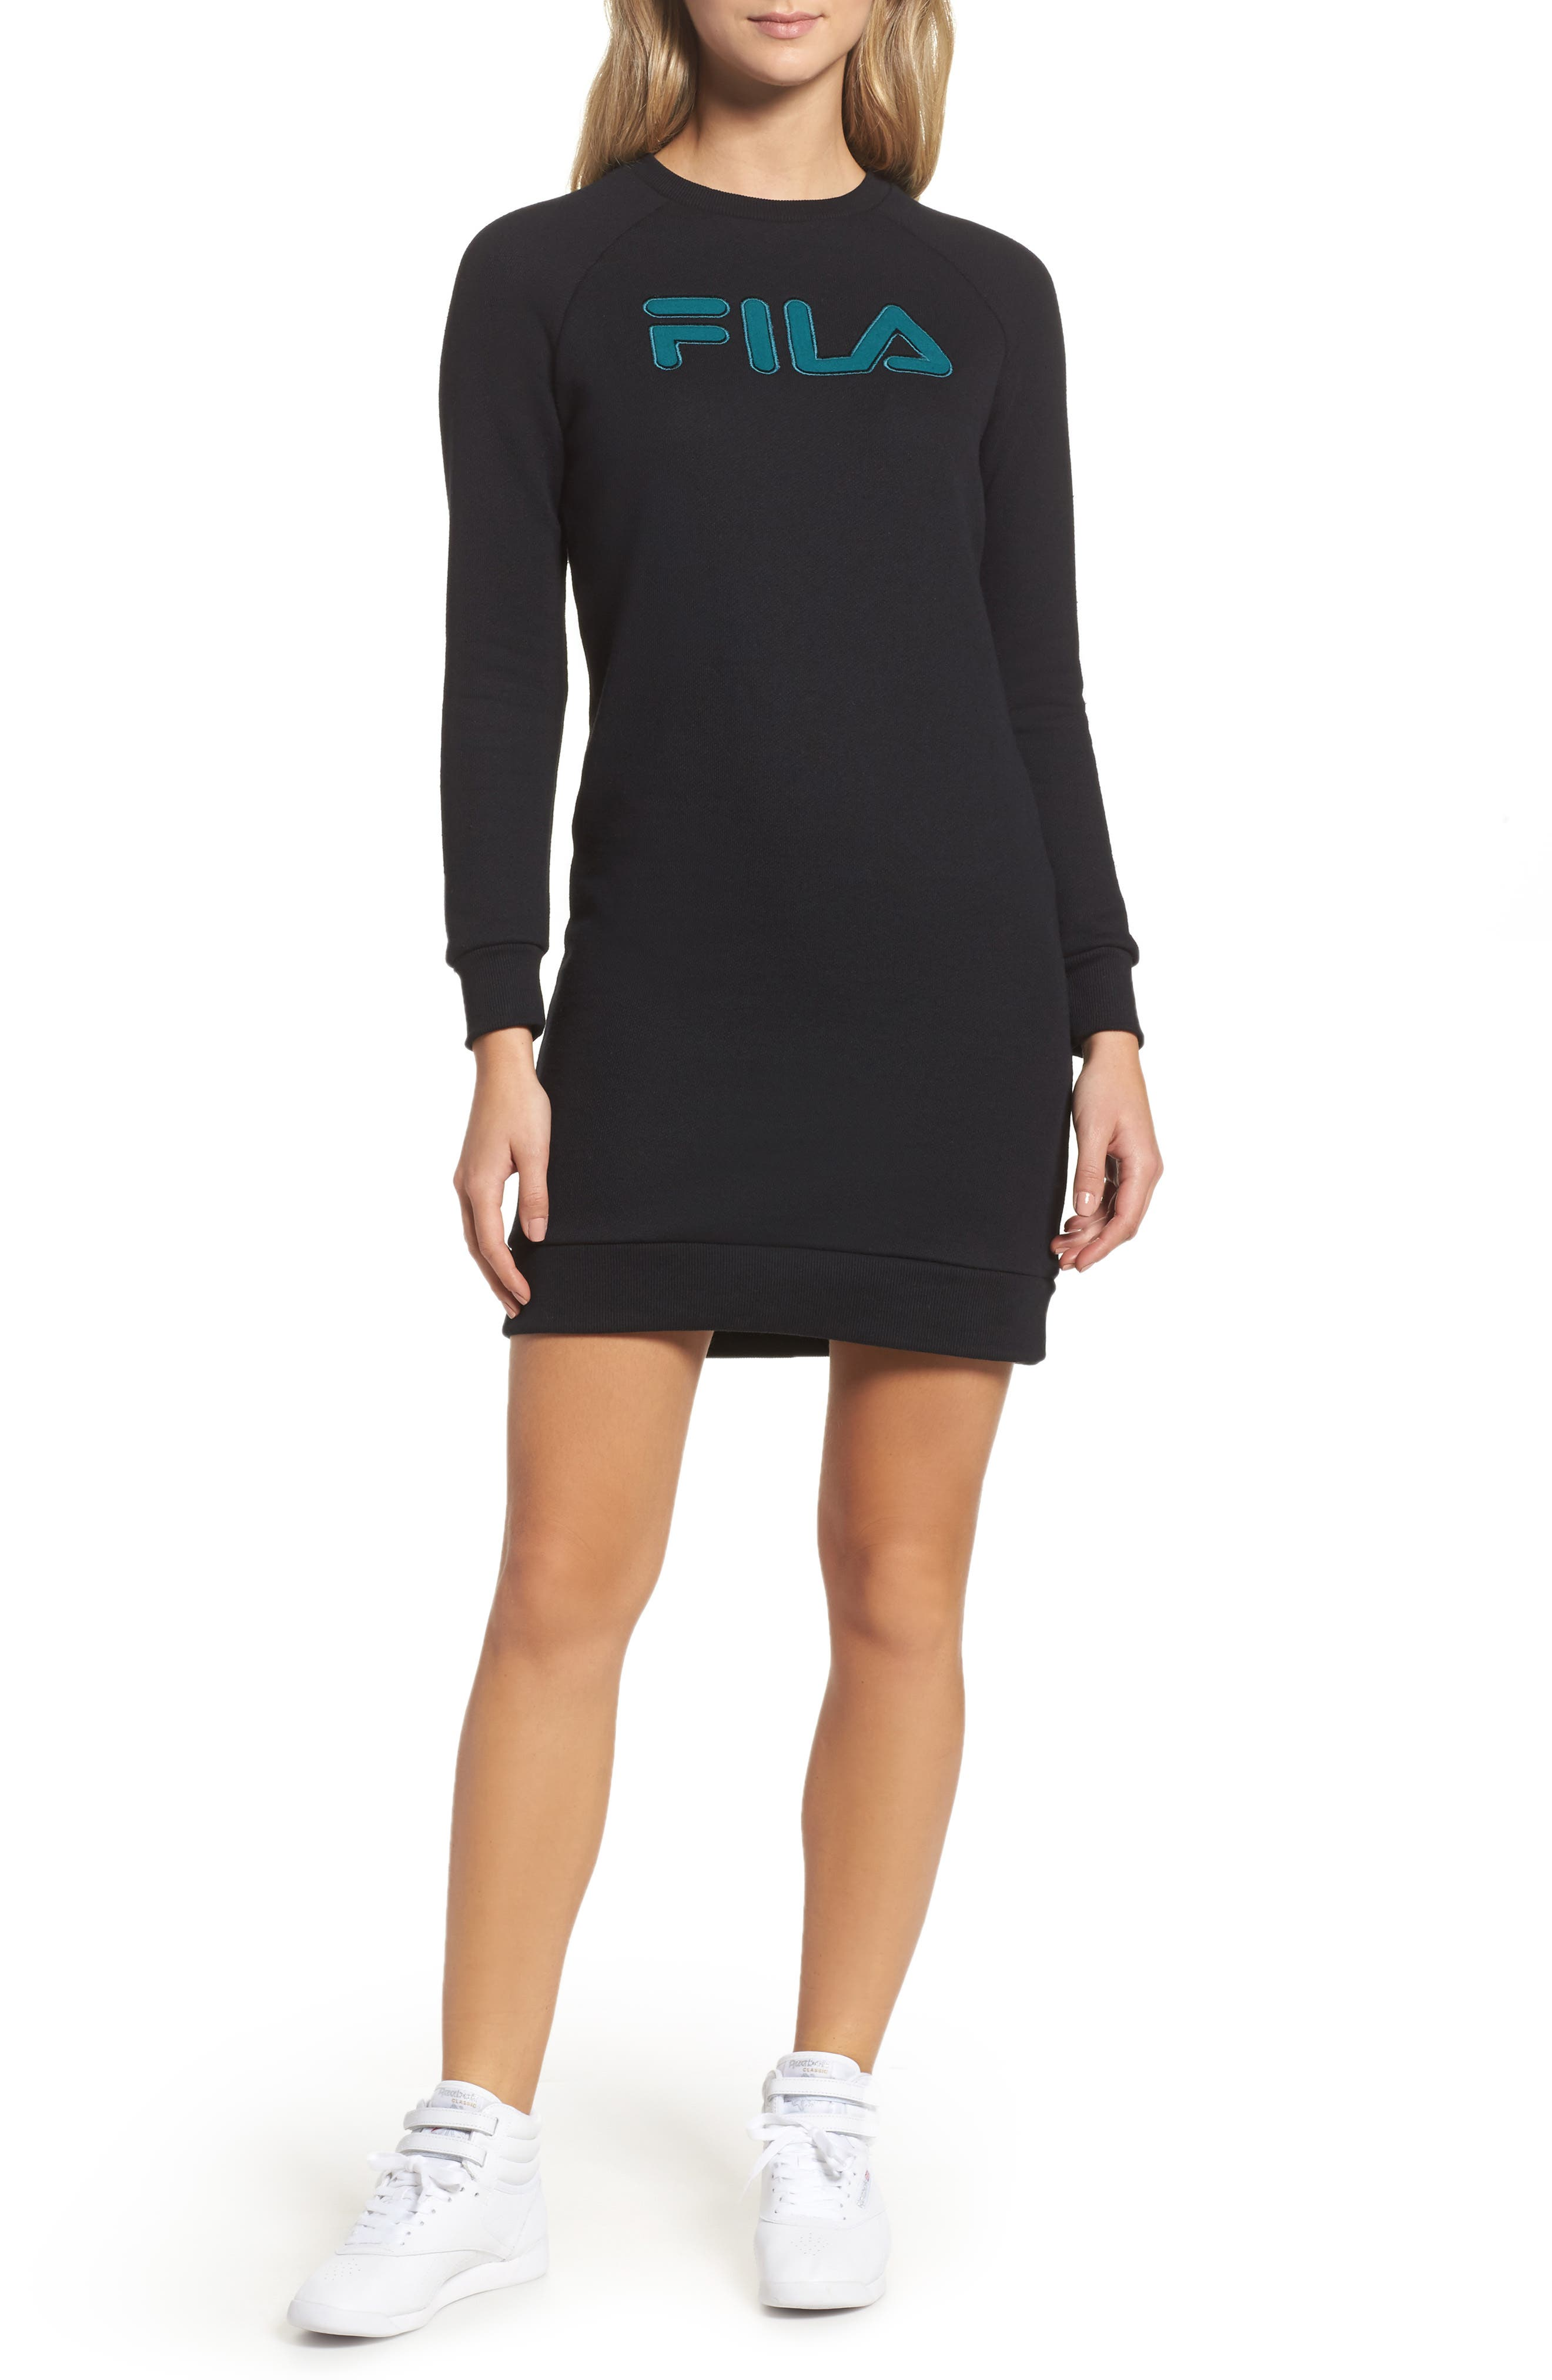 Courtney Sweatshirt Dress,                         Main,                         color, 001